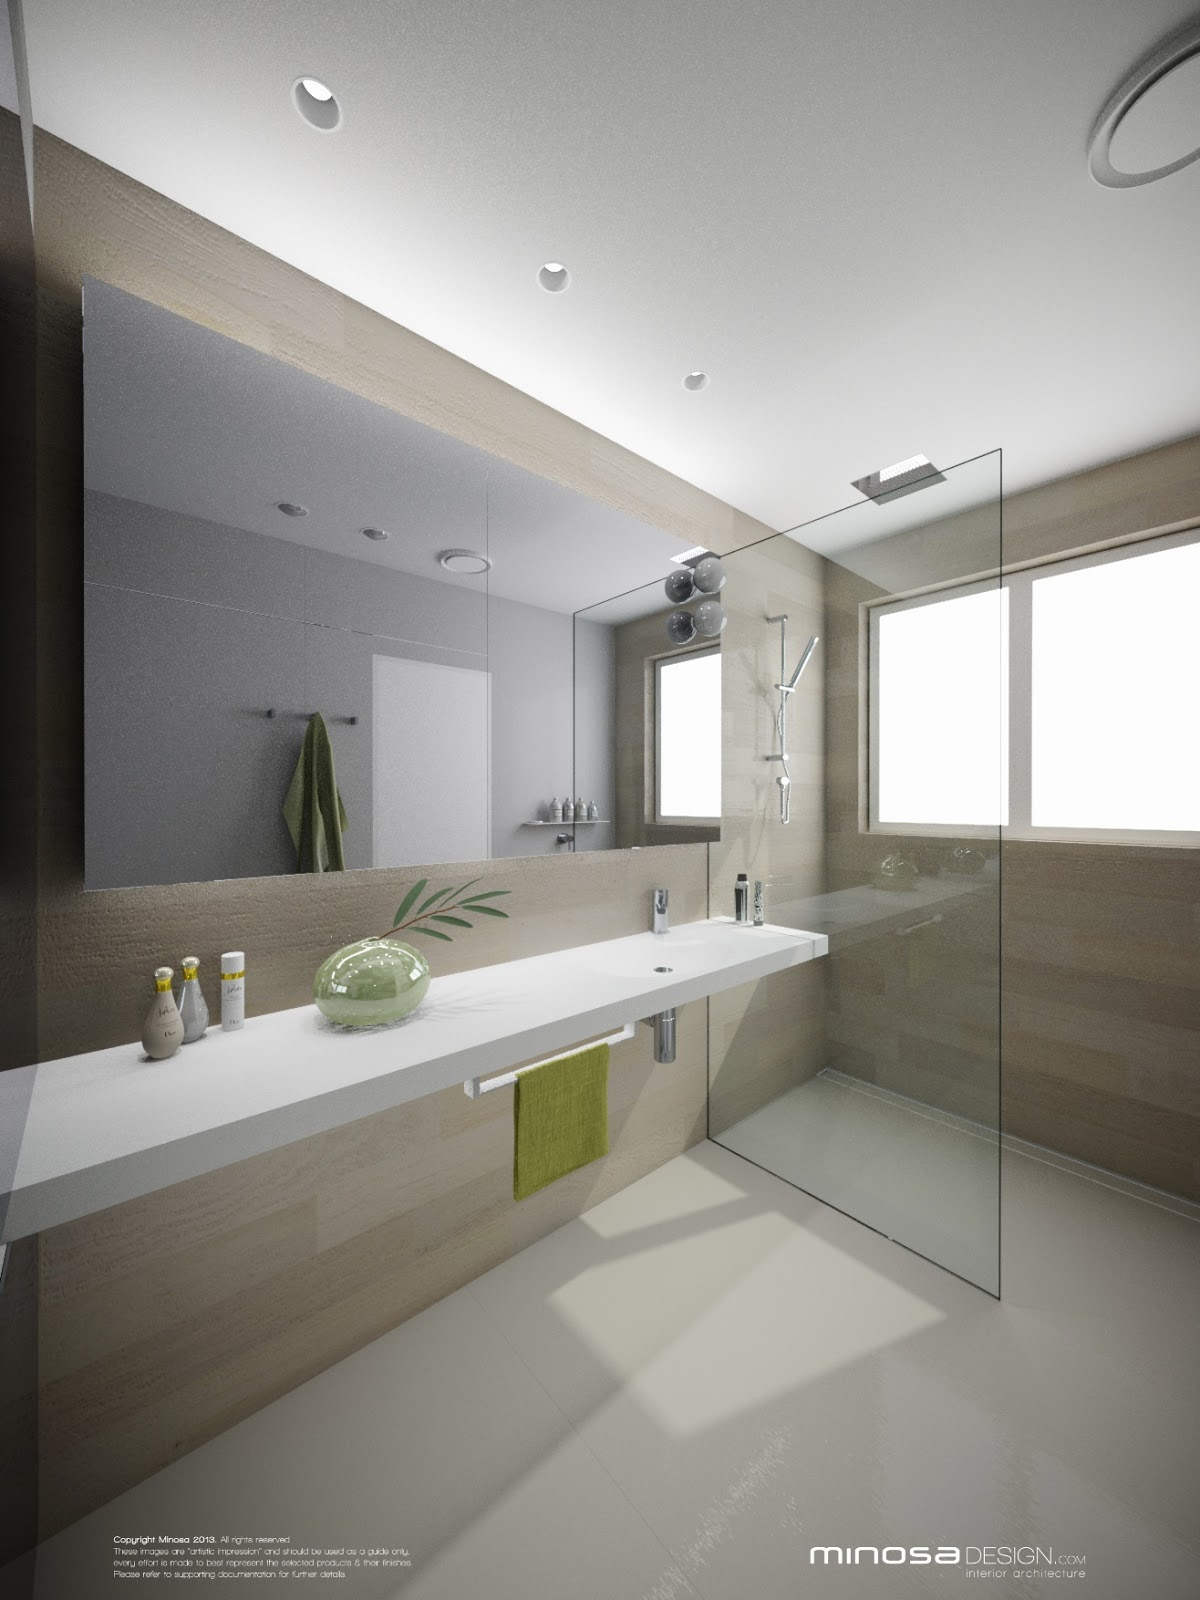 Modern Bathroom Design Trends And Materials For Bathroom: Minosa: Bringing Sexy Back